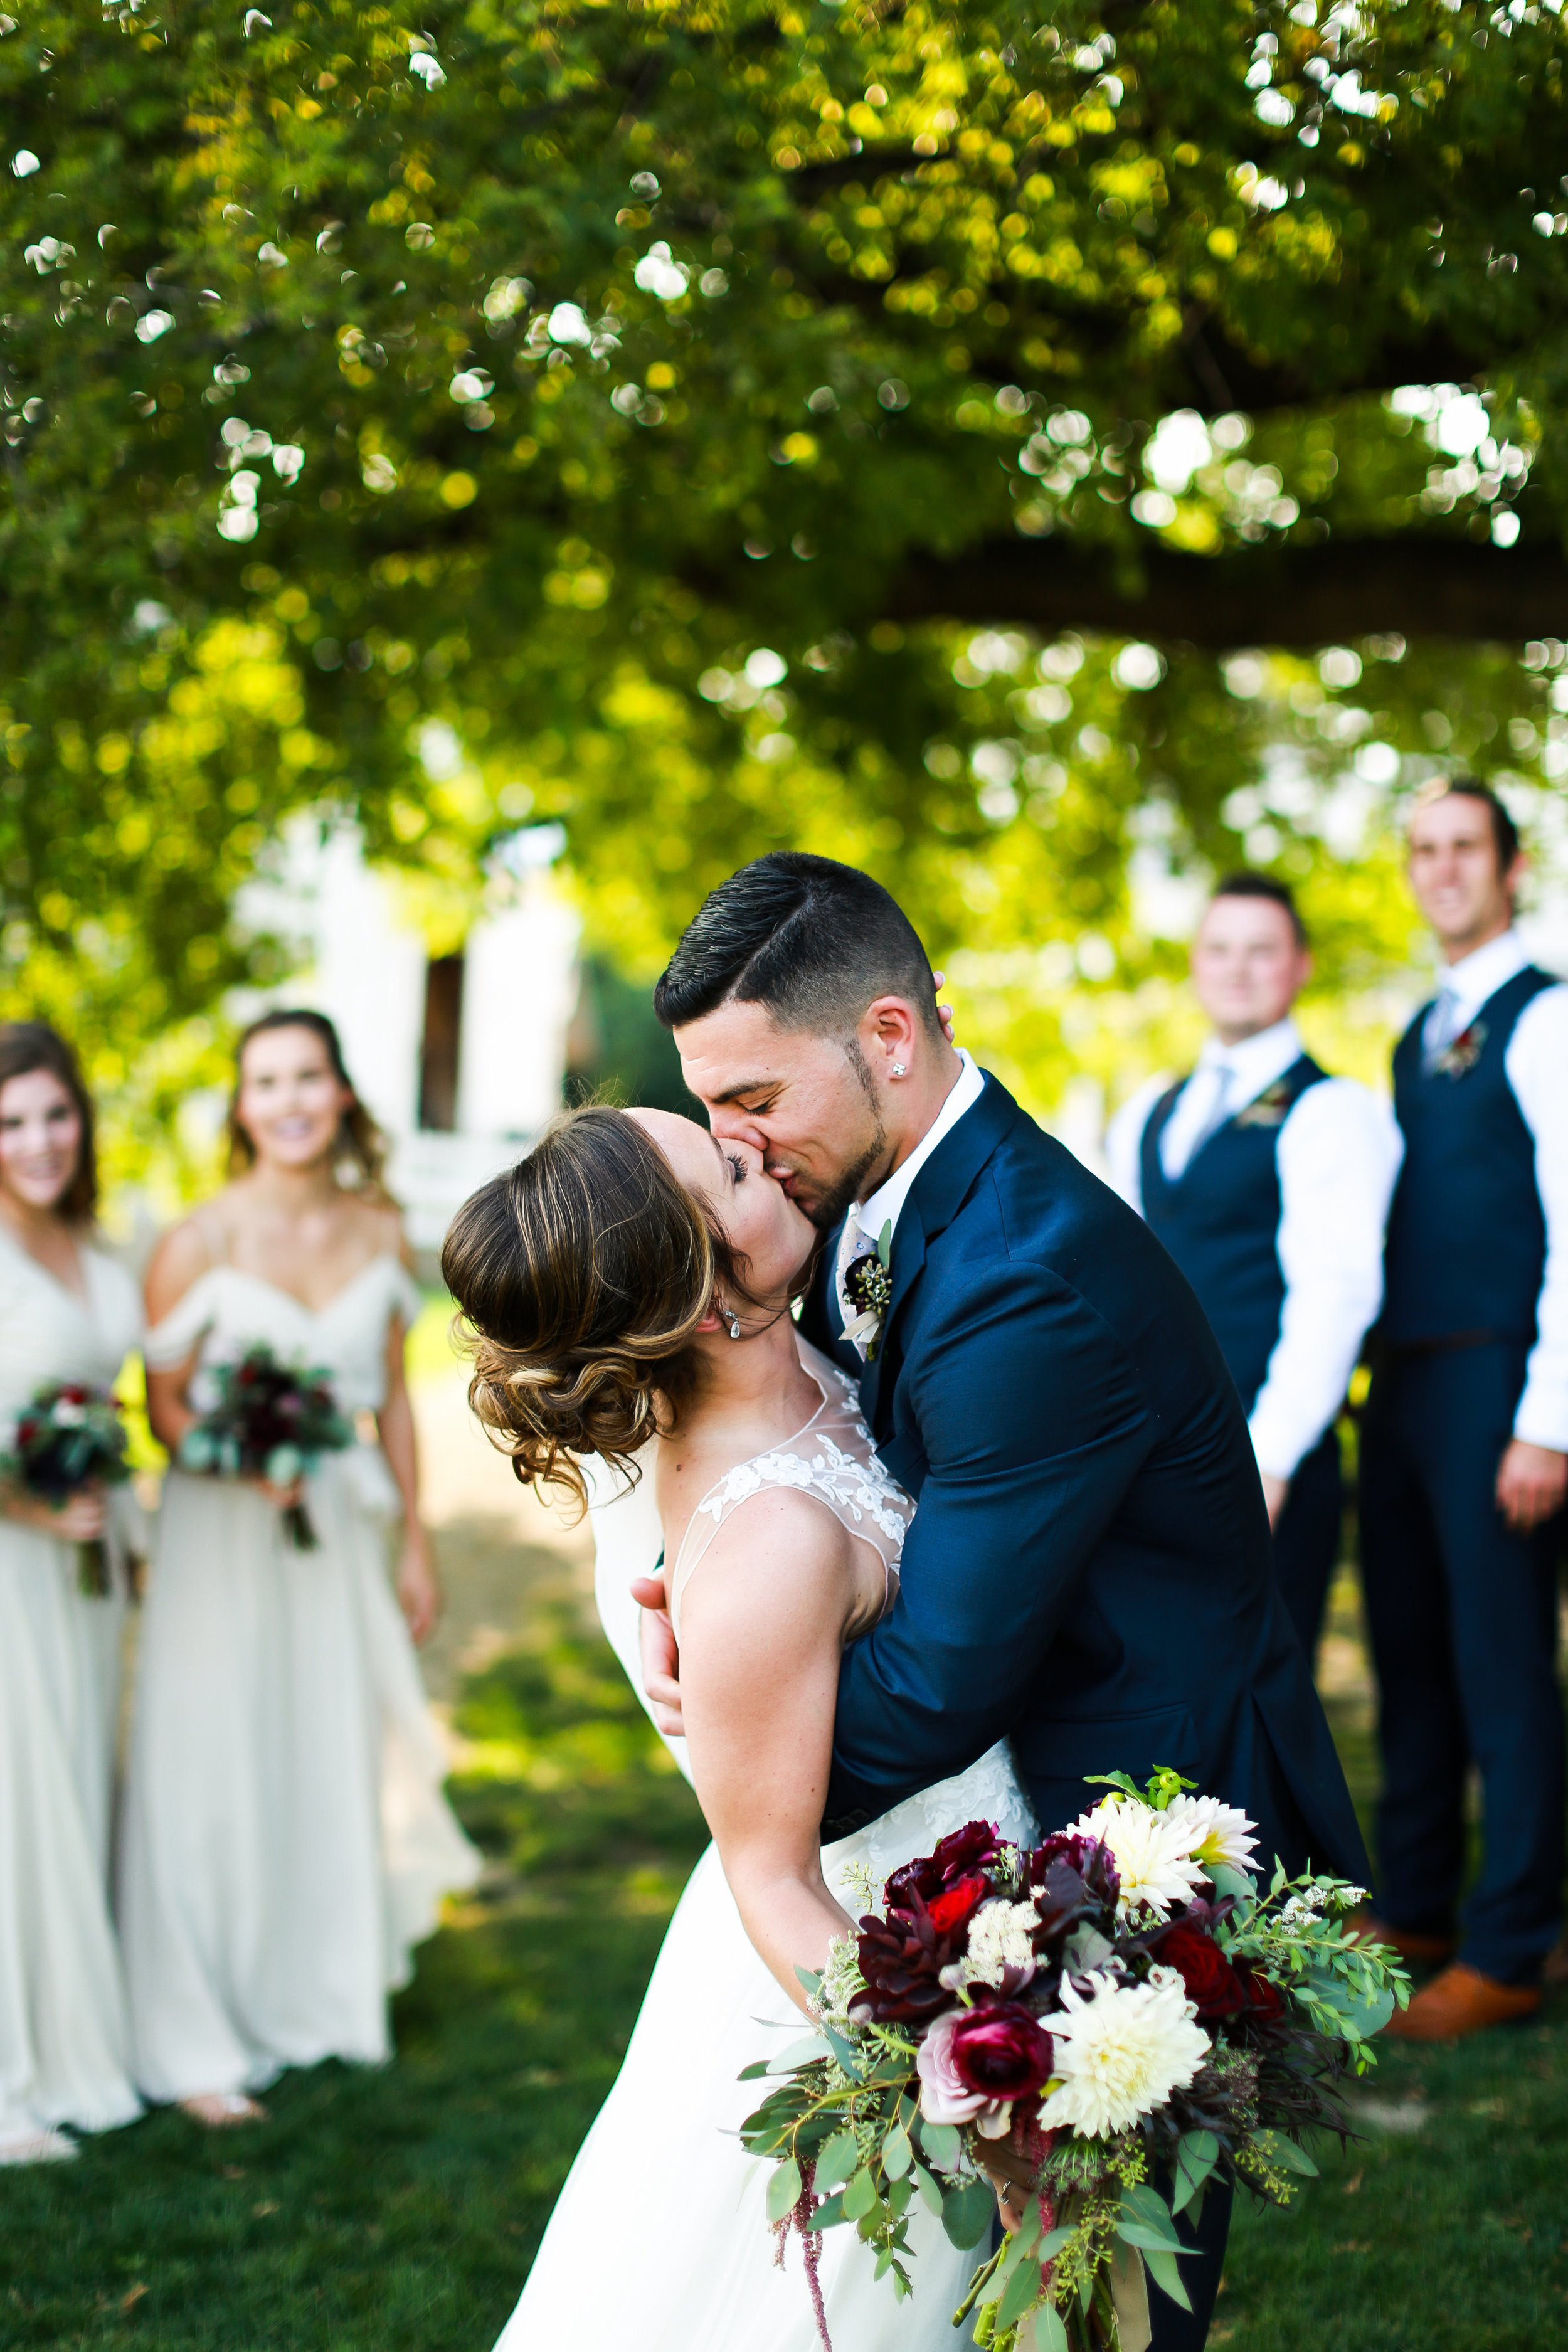 Jenna Kevin Wedding   Sixpence Events day of coordinating   Hannah Schmitt Photography   Legacy Hill Farm   bride and groom photos with bridal party kiss dip